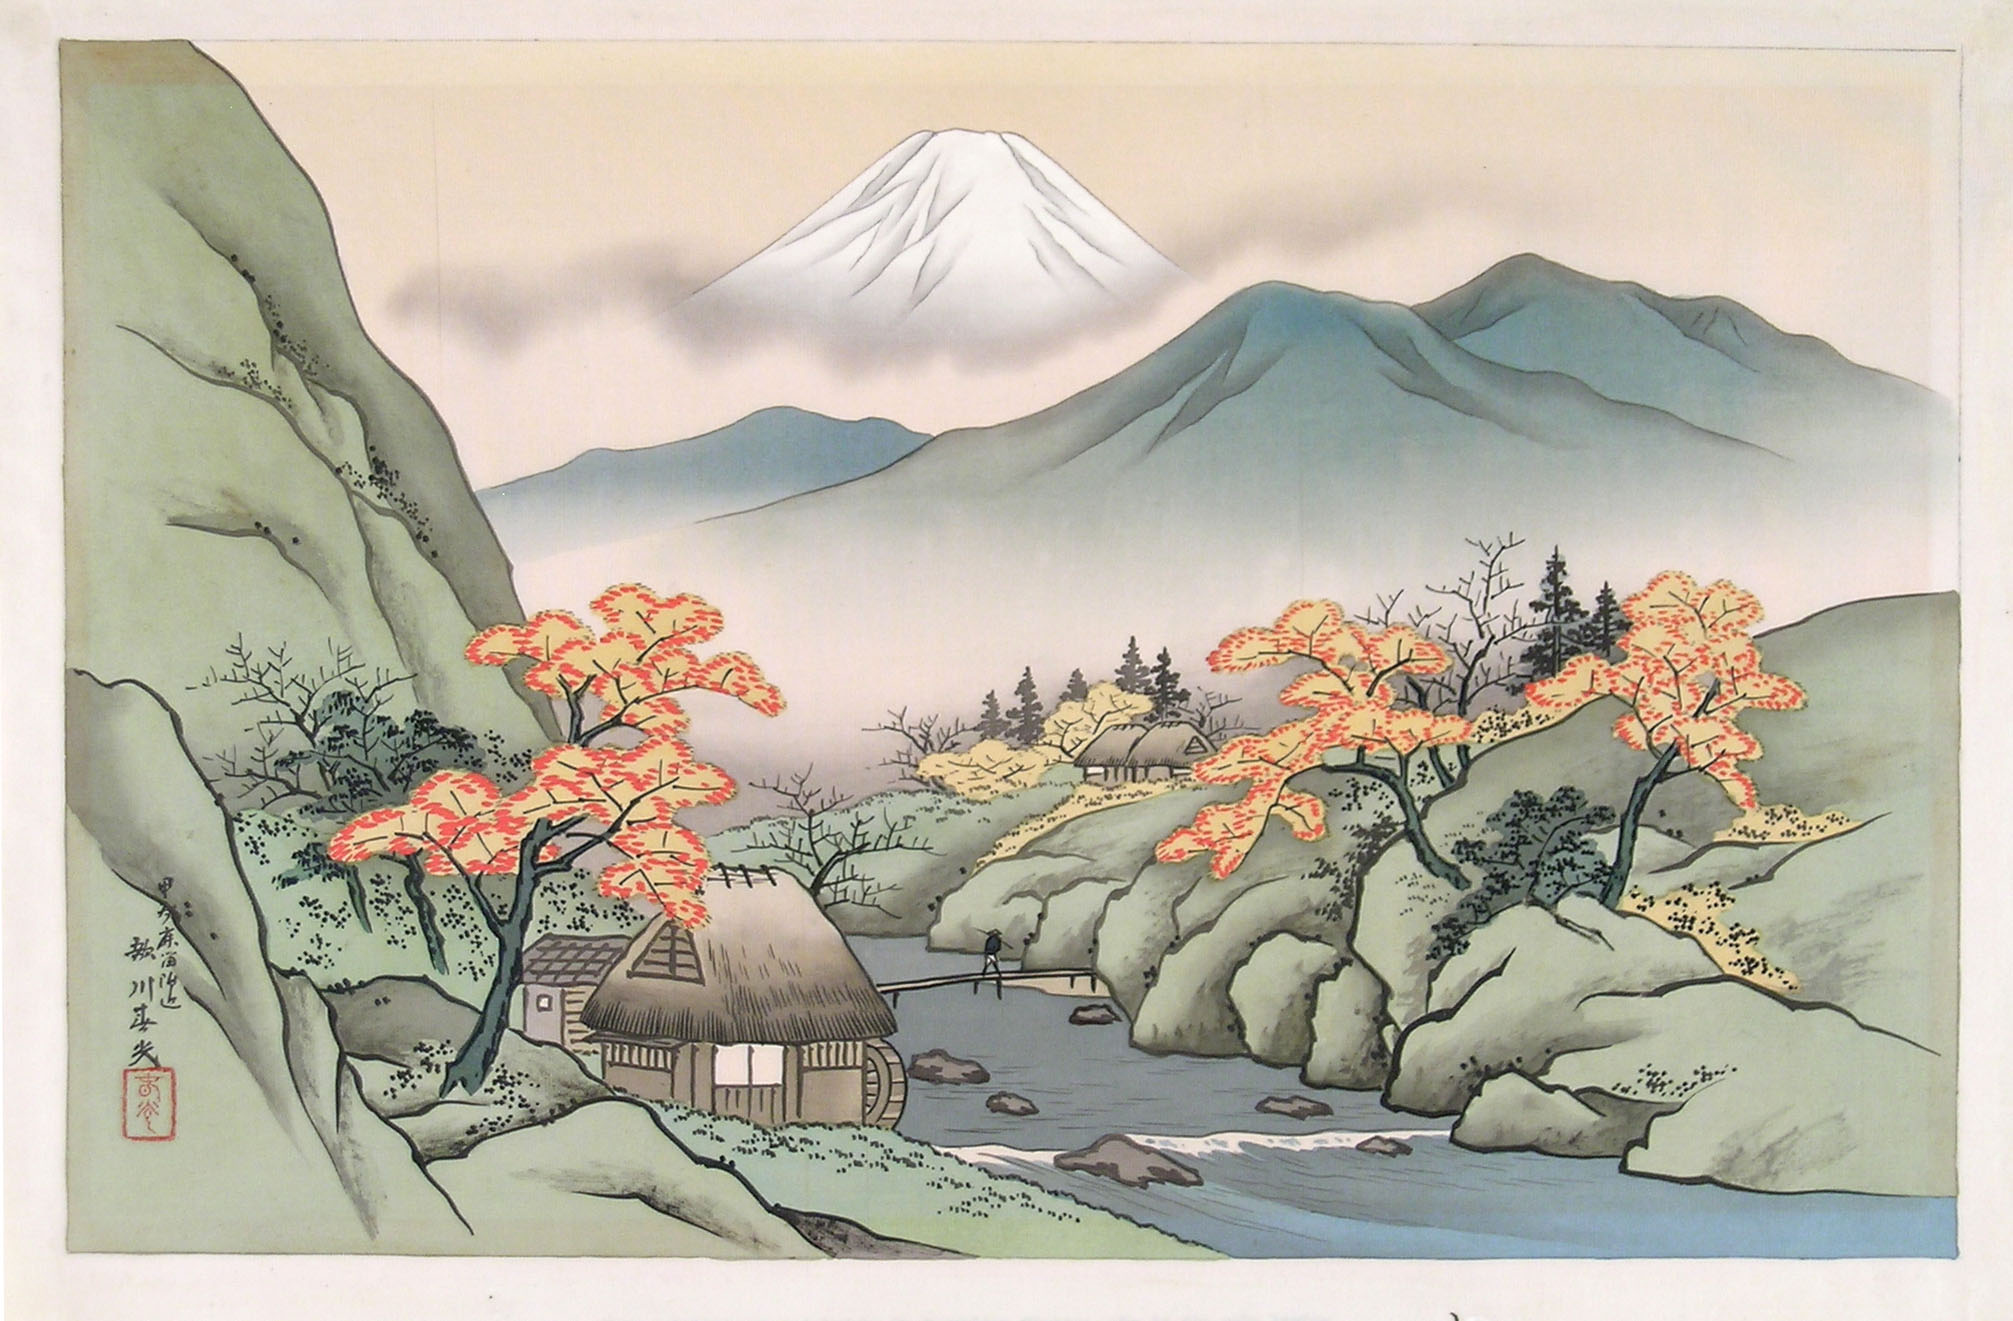 Harumitsu, landscape with Mount Fuji and a torrent